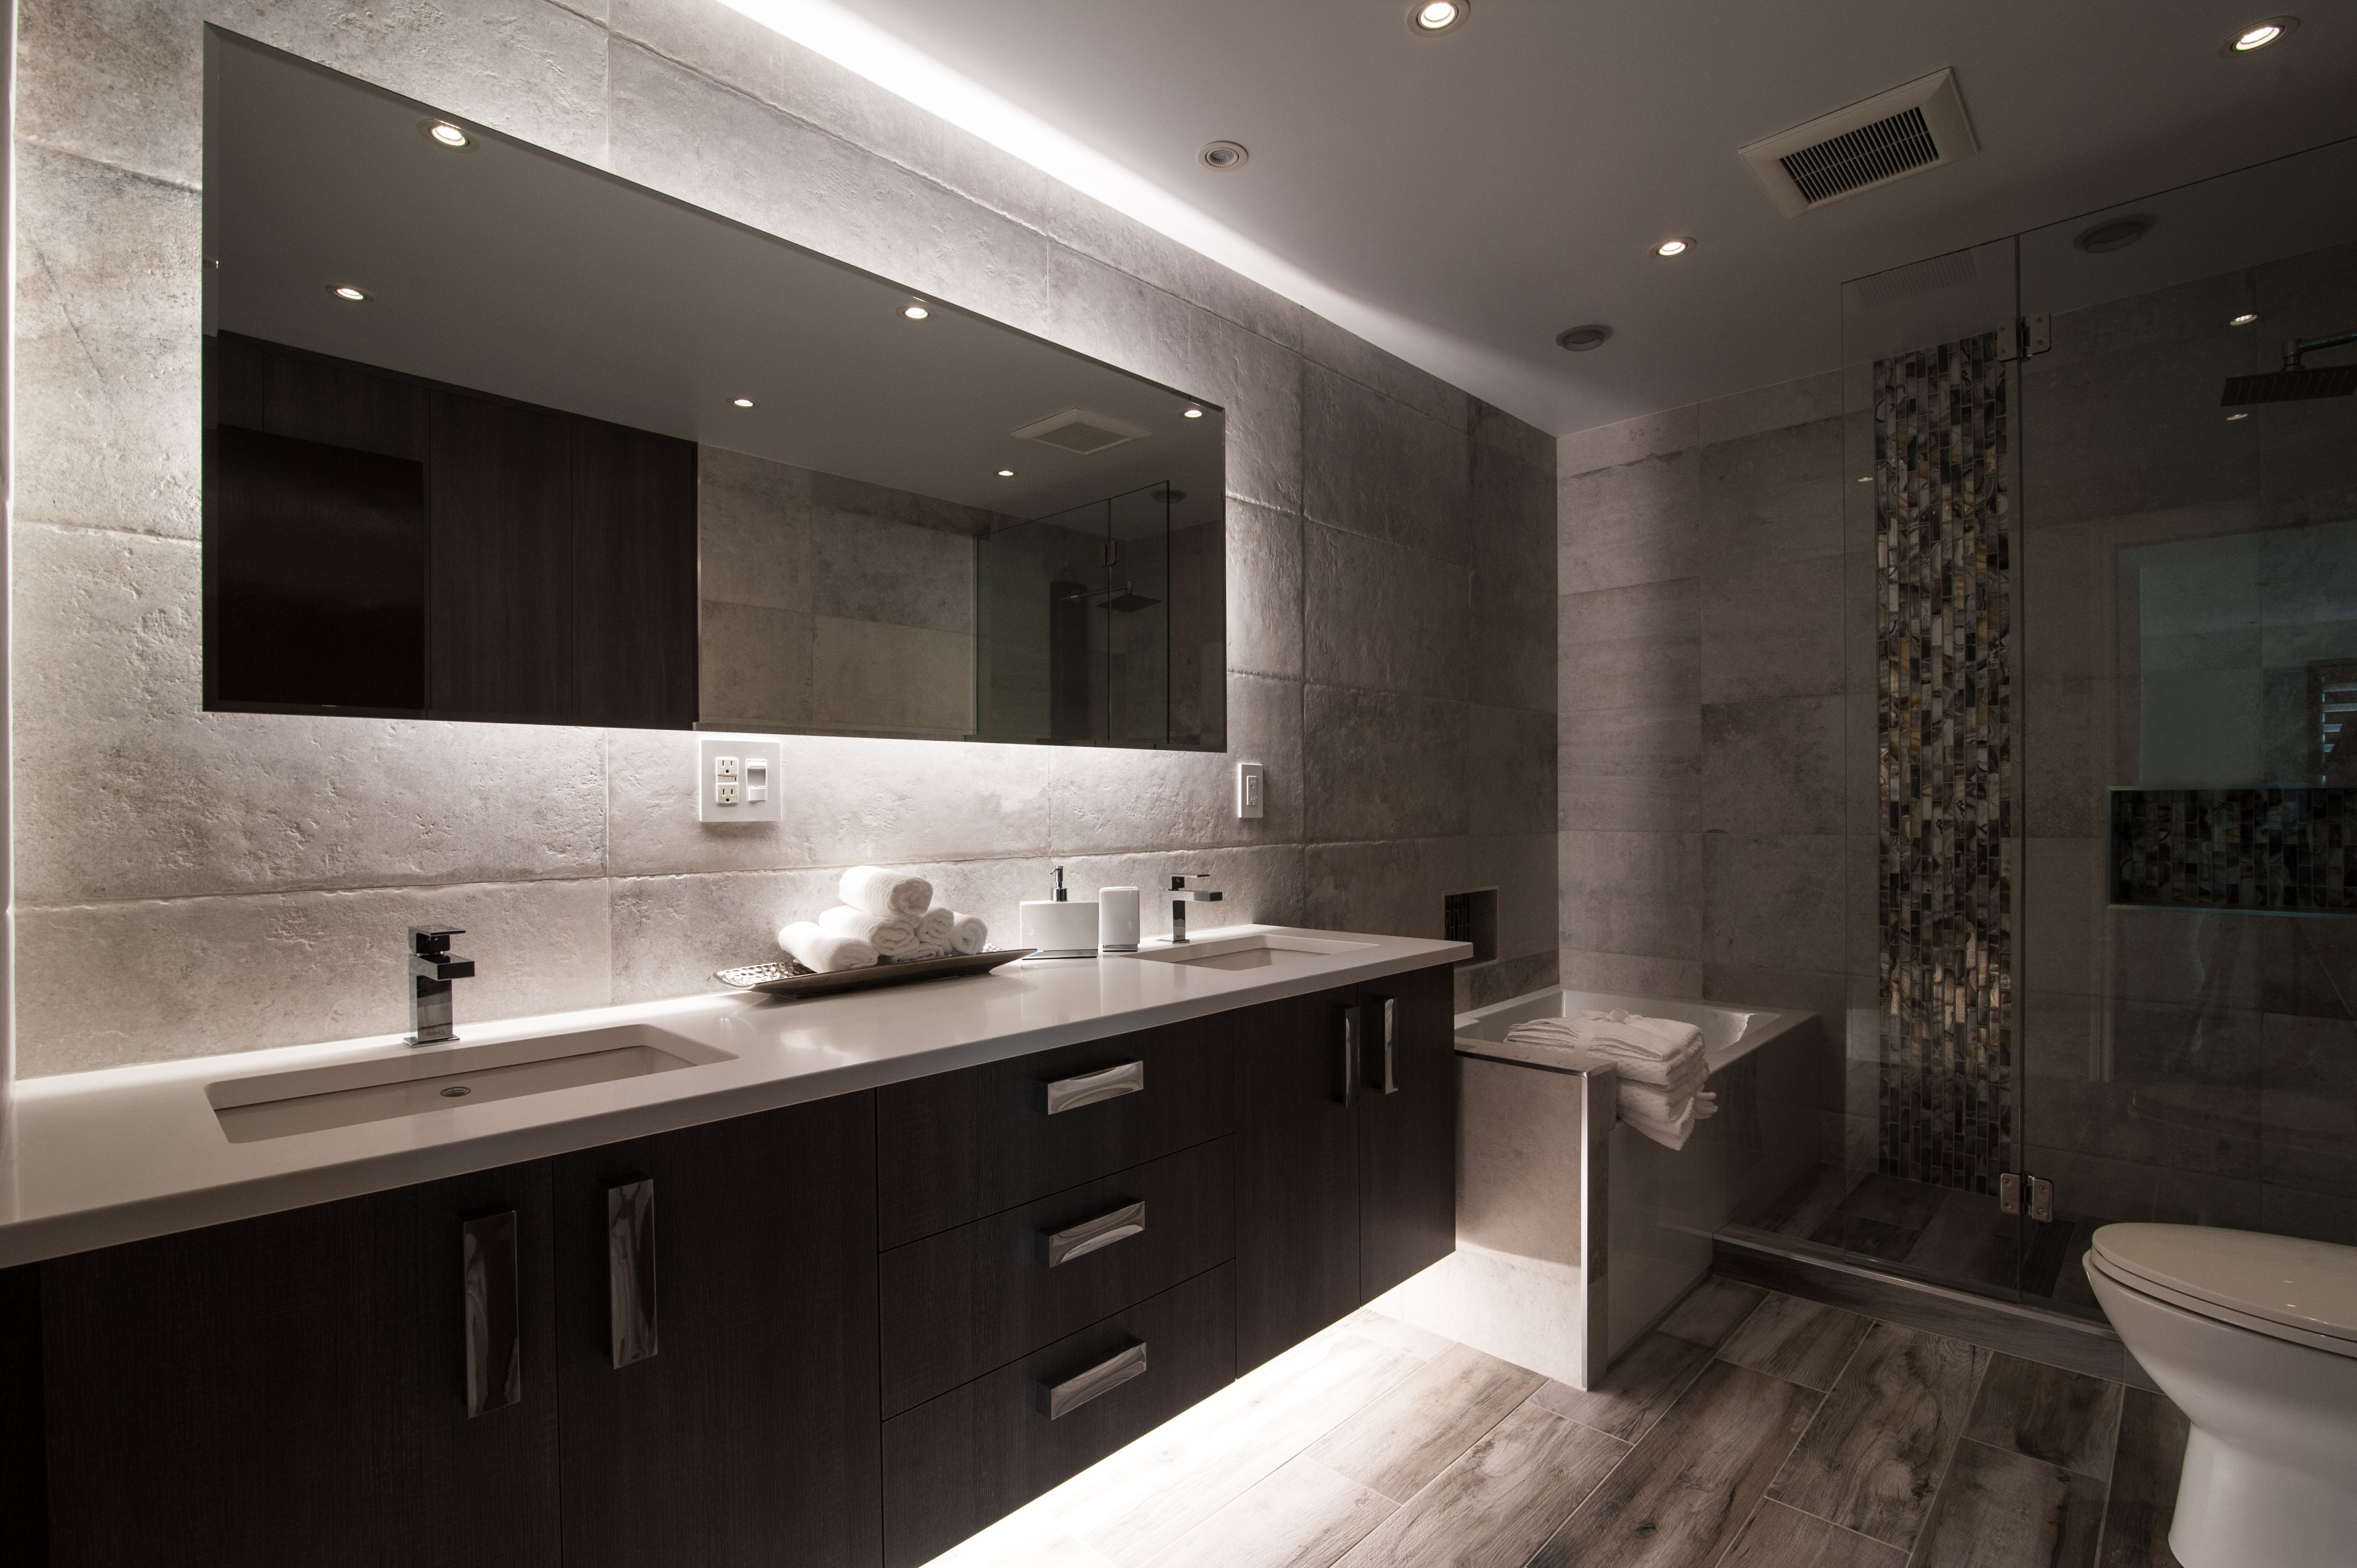 Large rectangular wall mirror in bathroom with glowing ...